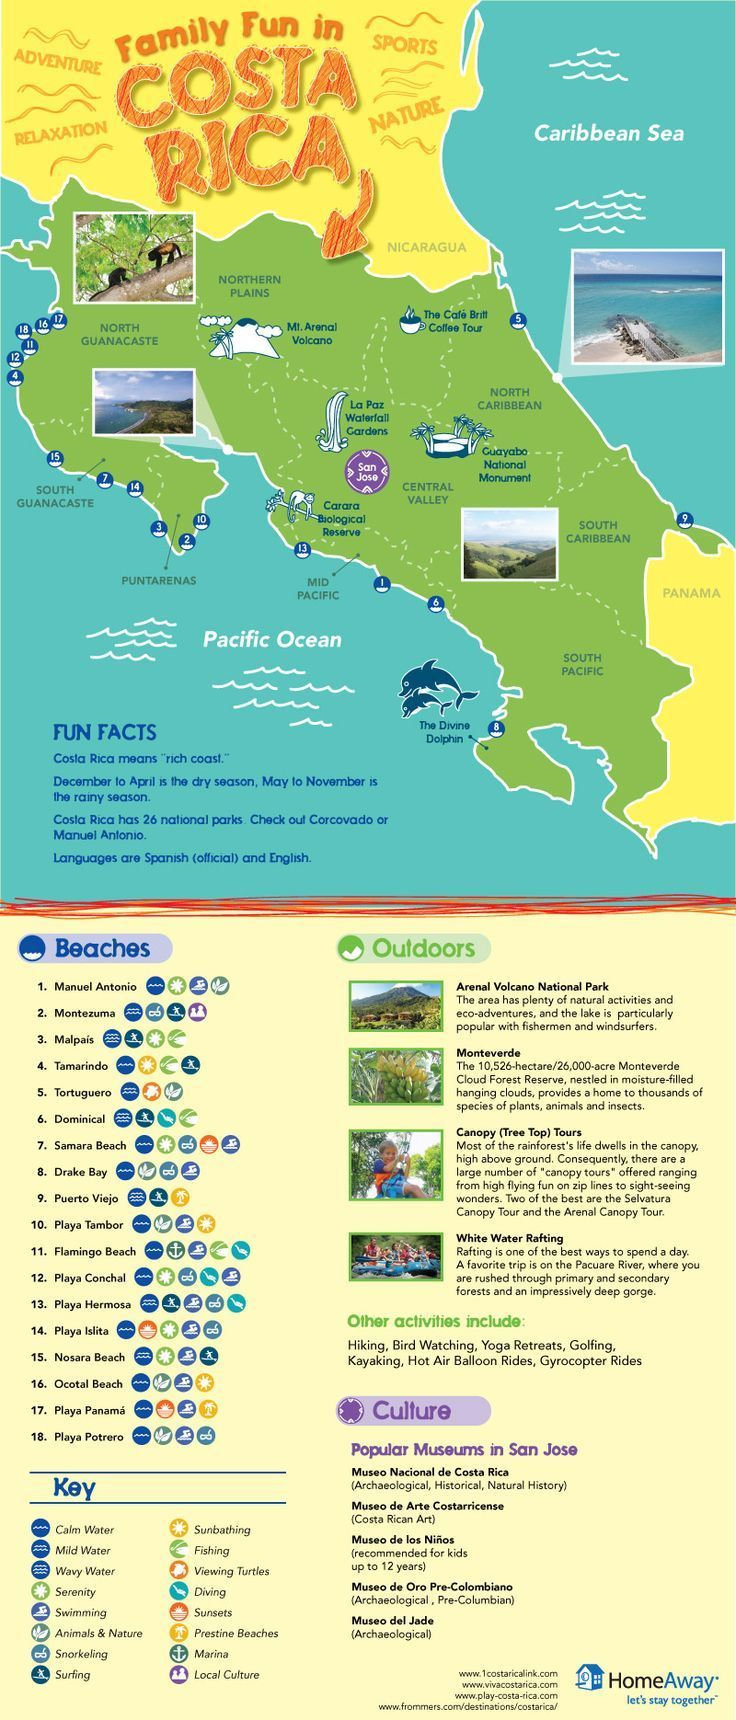 Costa Rica Vacation Map for Family Vacations - an Infographic from HomeAway Travel Ideas